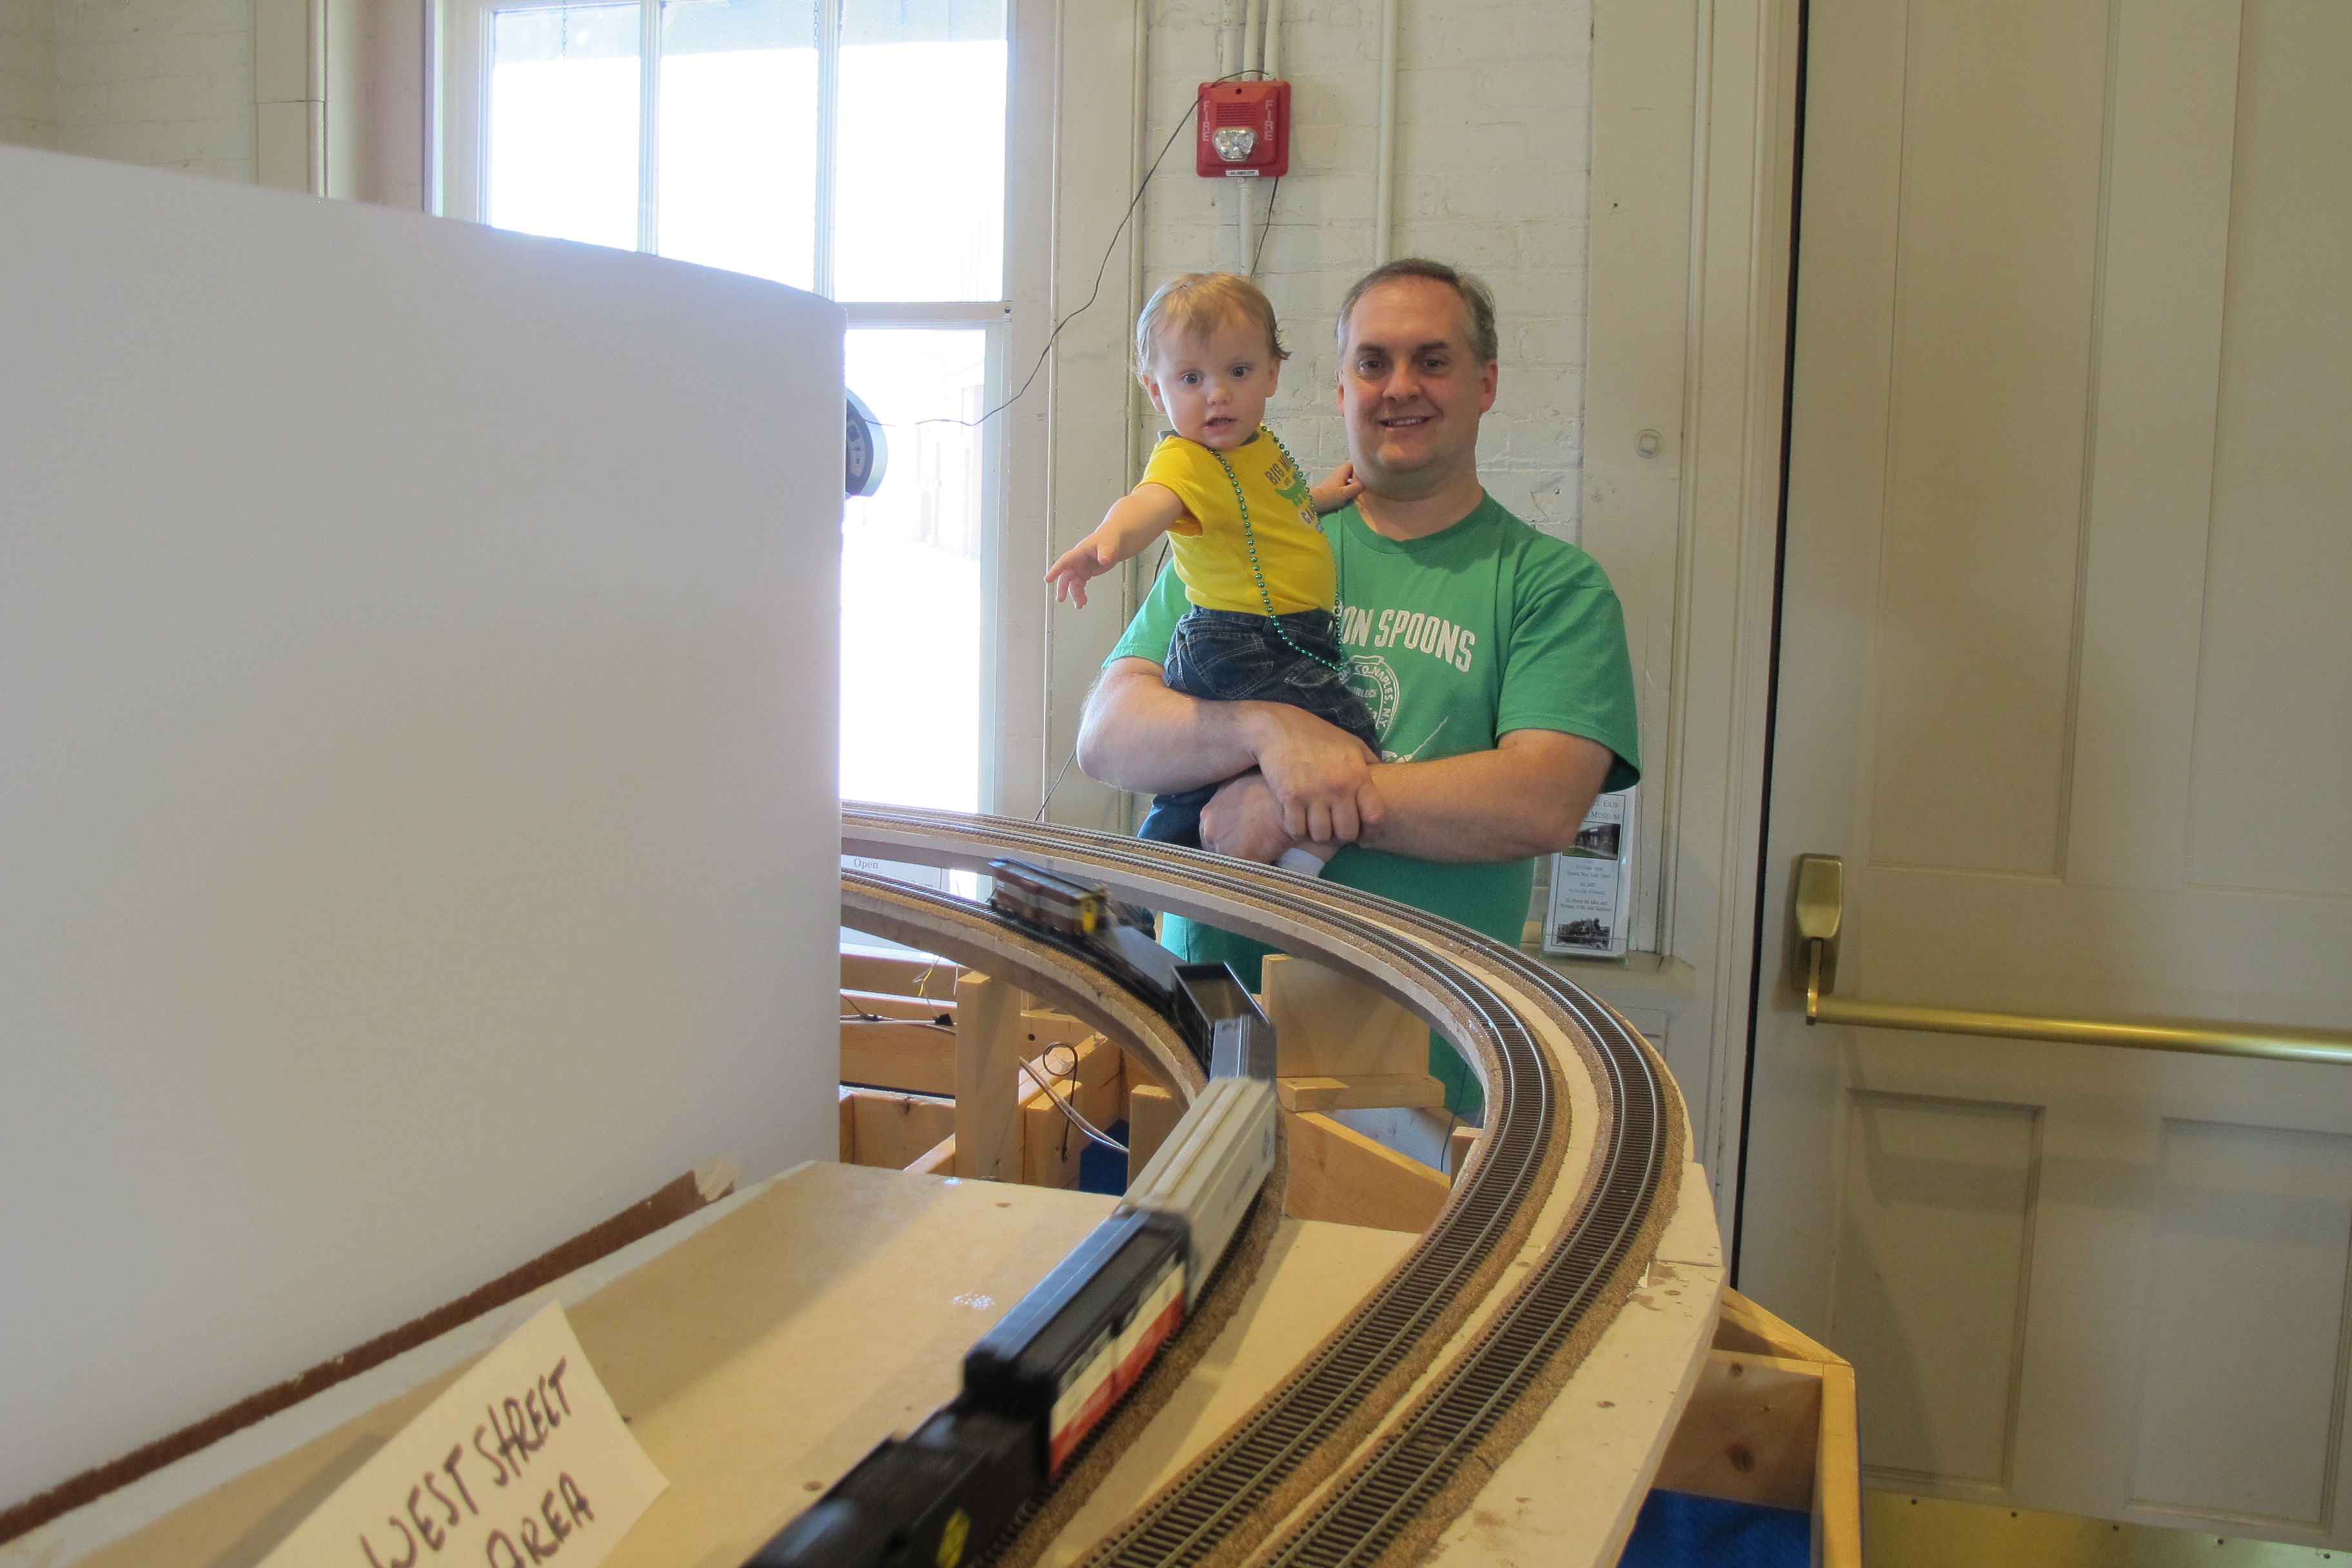 Watching the model train